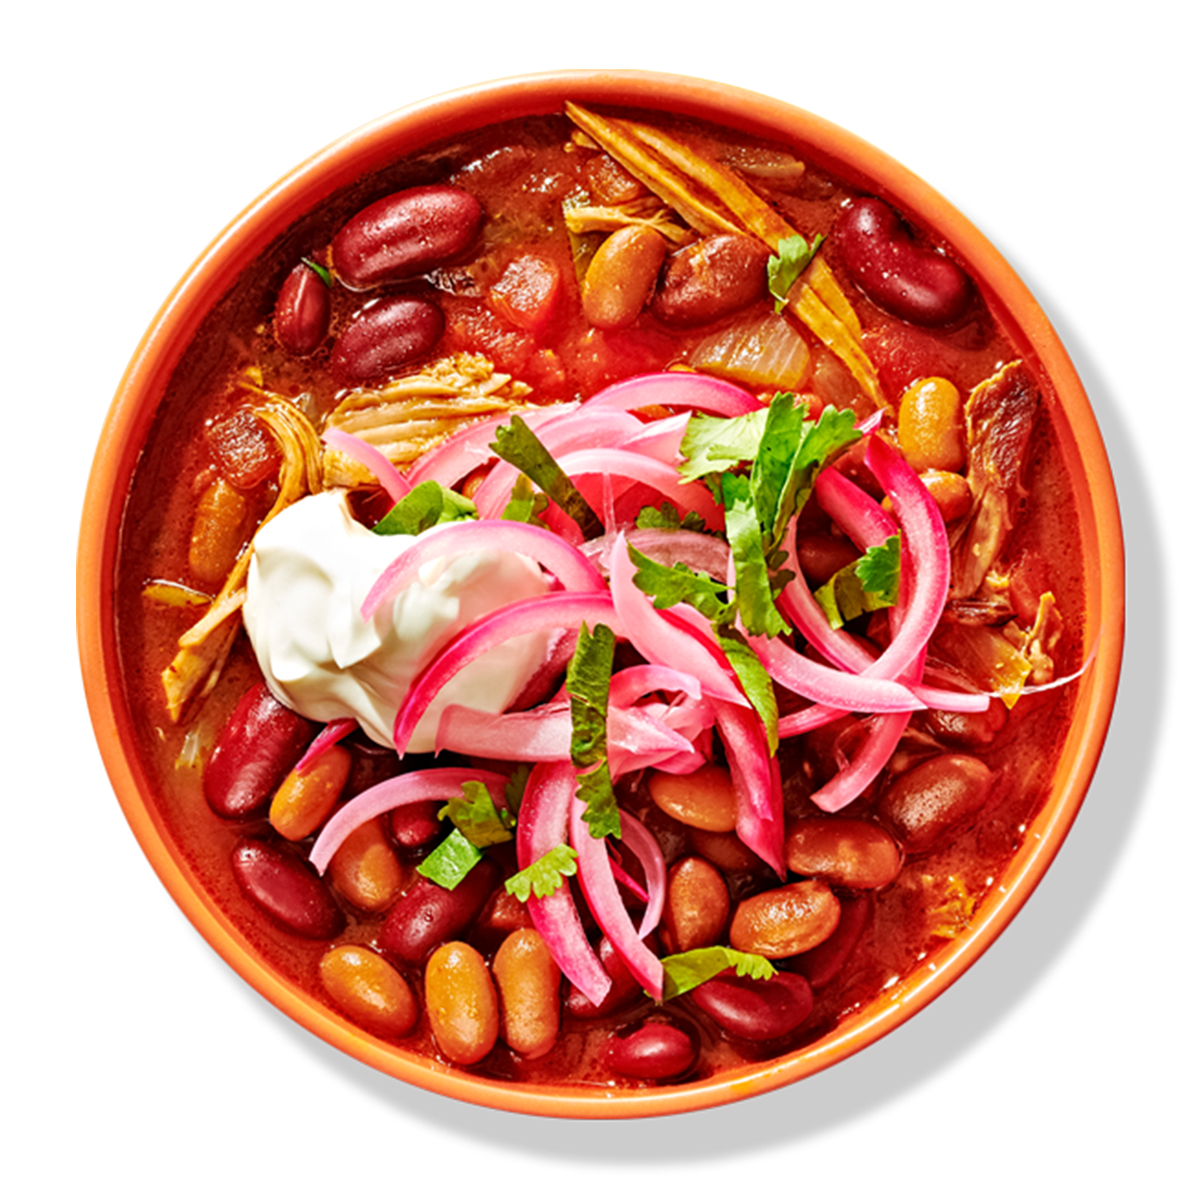 Chicken and bean chili in yellow bowl garnished with sour cream and onion